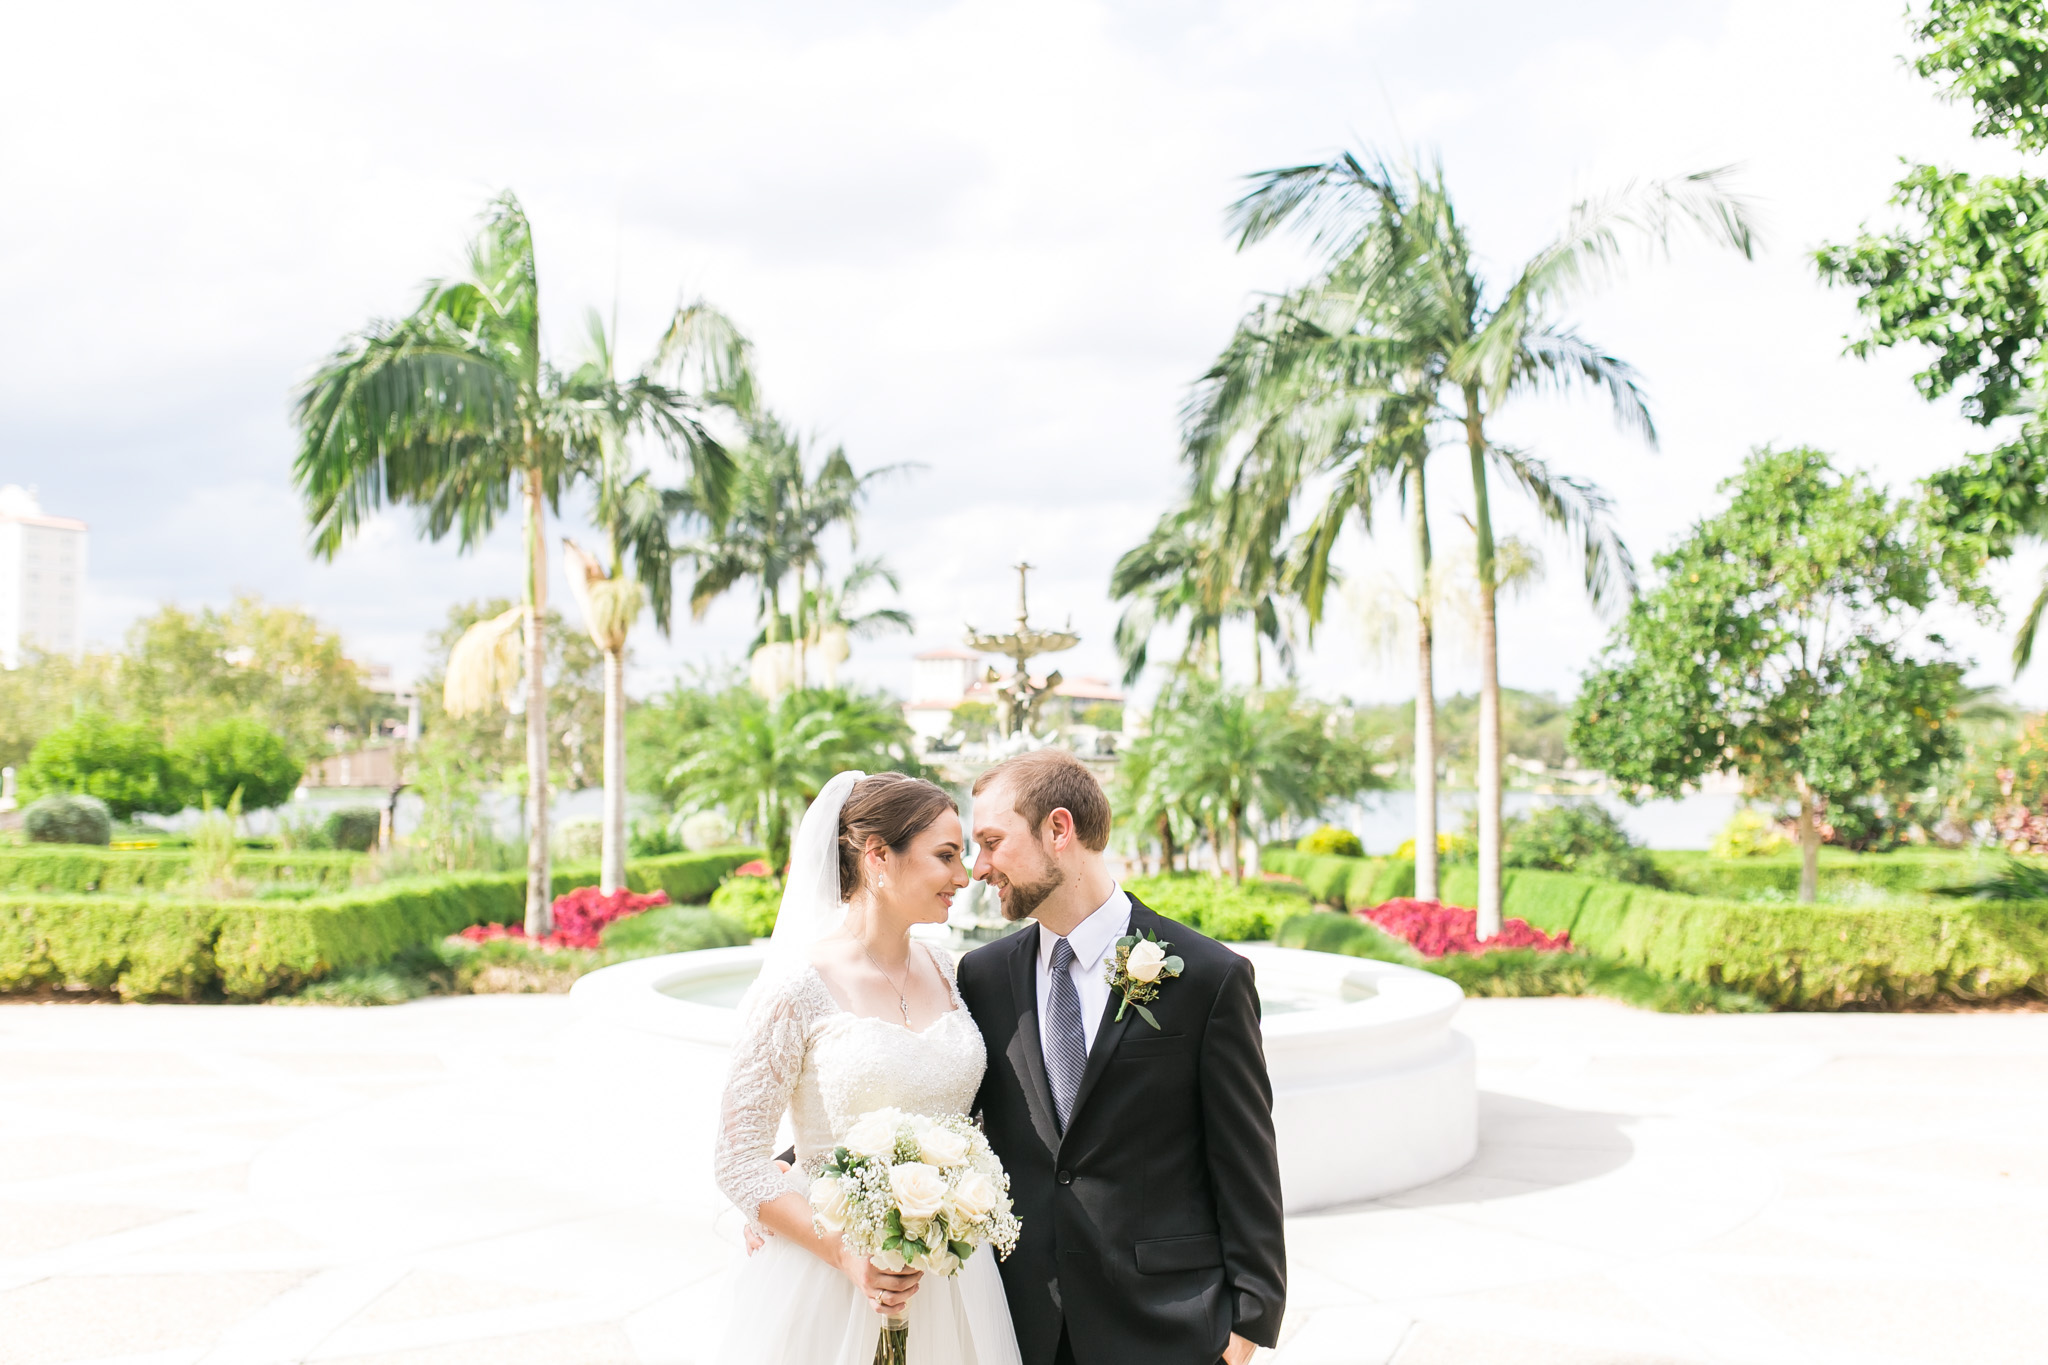 CONNOR + KALEY | LAKELAND, FL WEDDING — Elaine K. Garland Photography